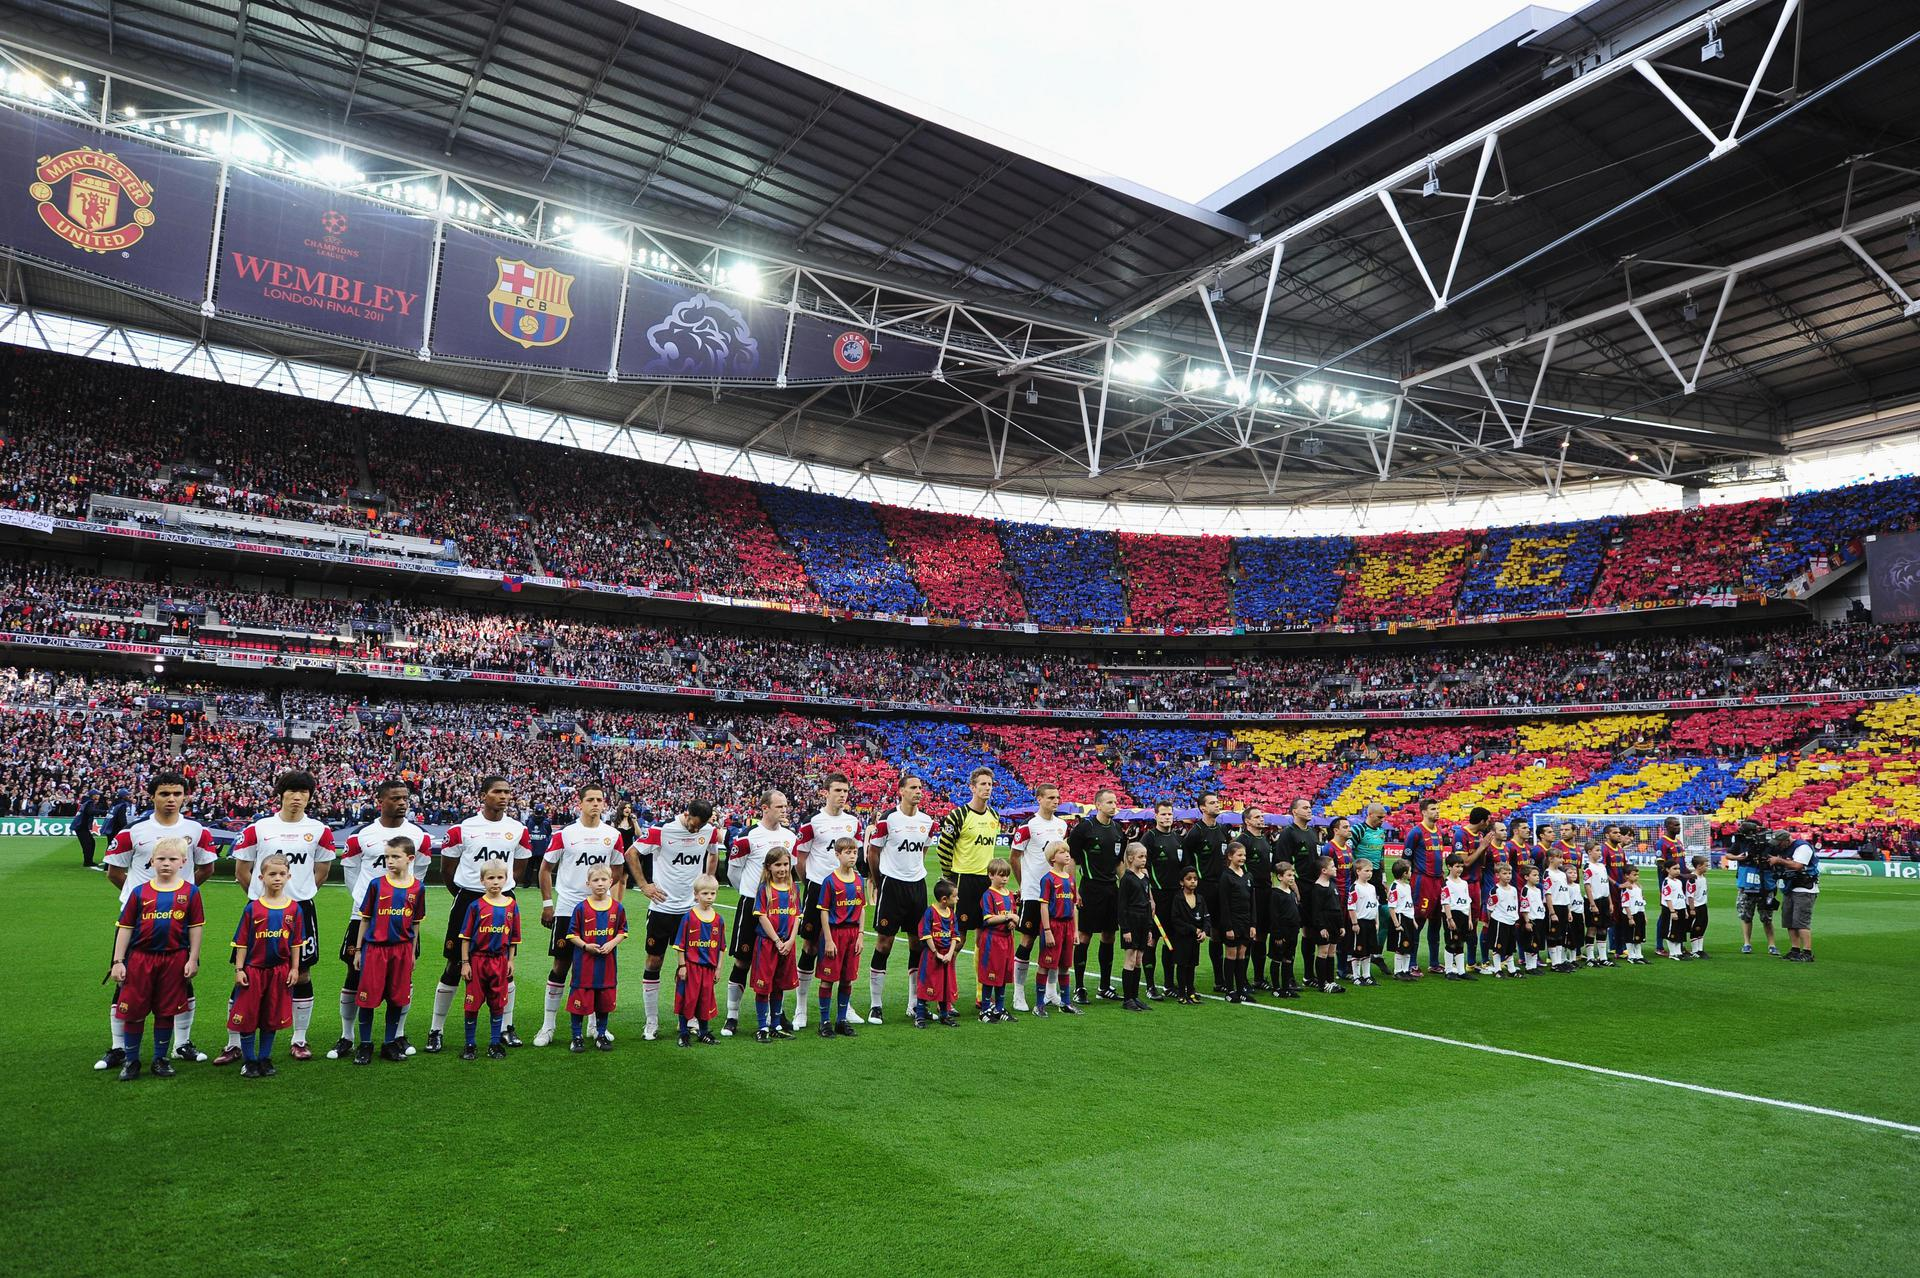 Manchester United and Barcelona line up before the 2011 UEFA Champions League final at Wembley